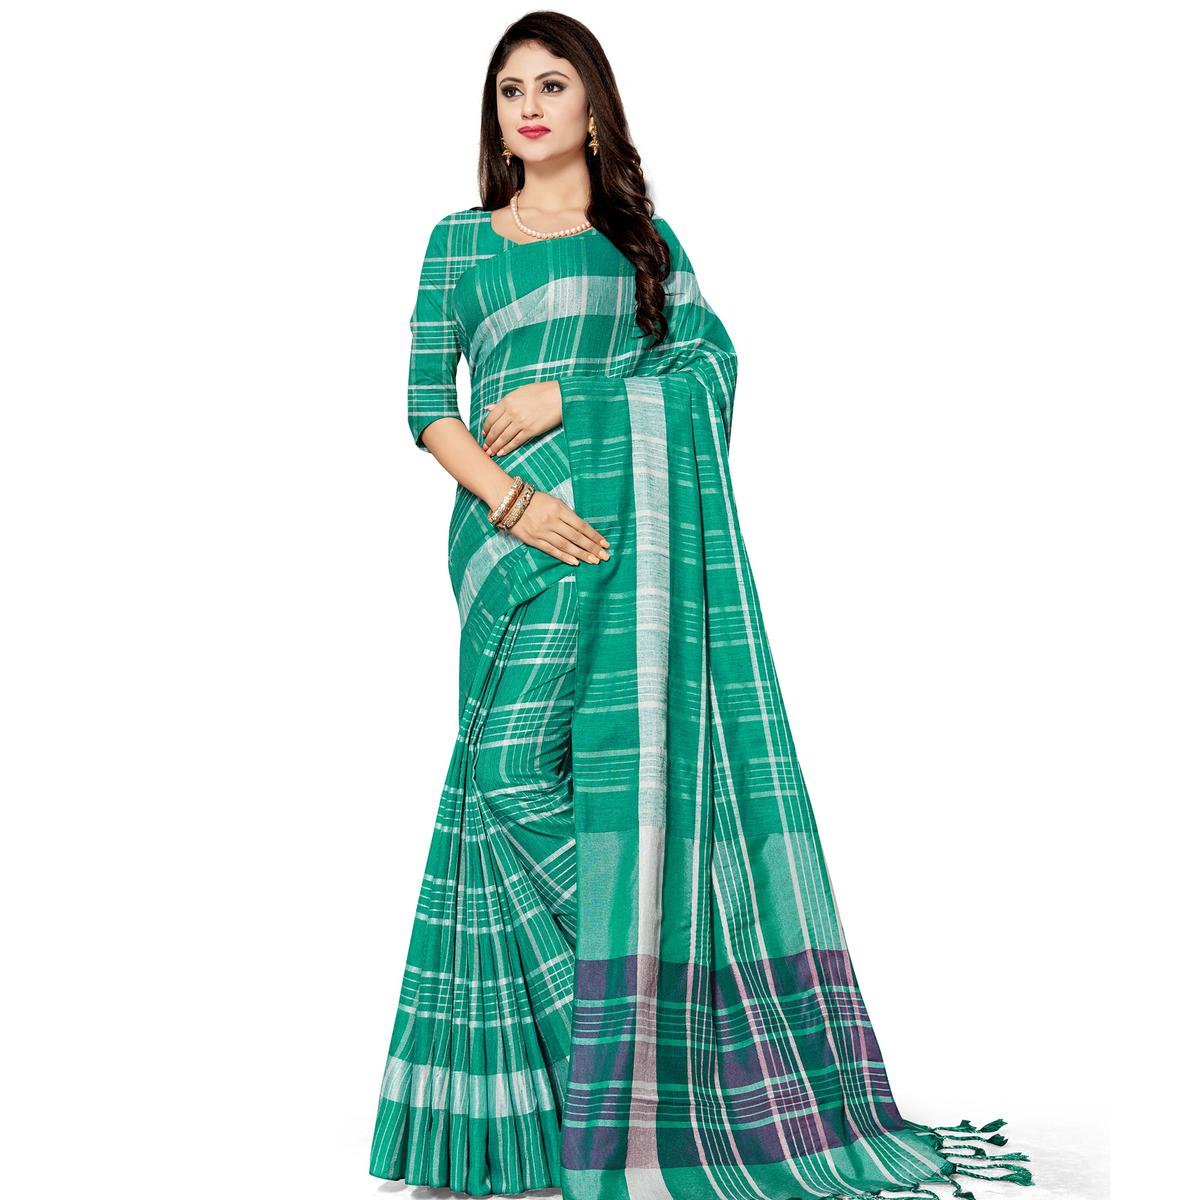 Adorning Green Colored Fesive Wear Stripe Print Cotton Silk Saree With Tassels